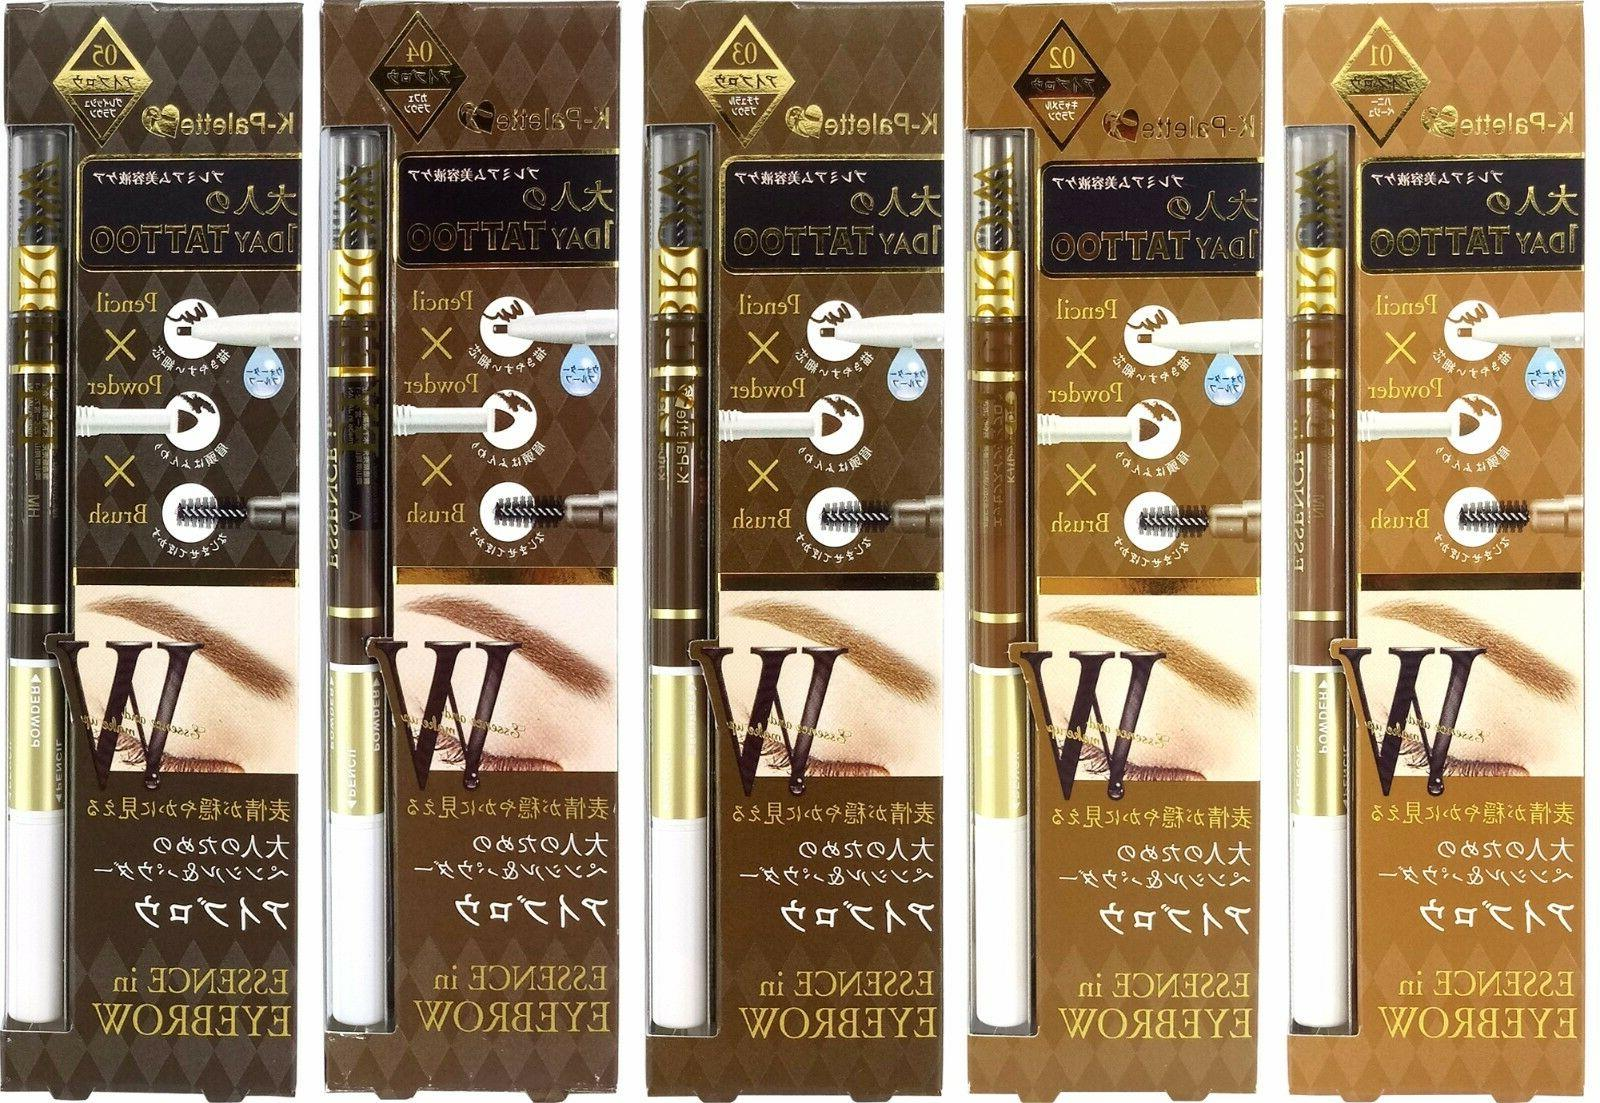 Japan K-Palette 1 Day Tattoo Essence in Eyebrow Pencil, Powd